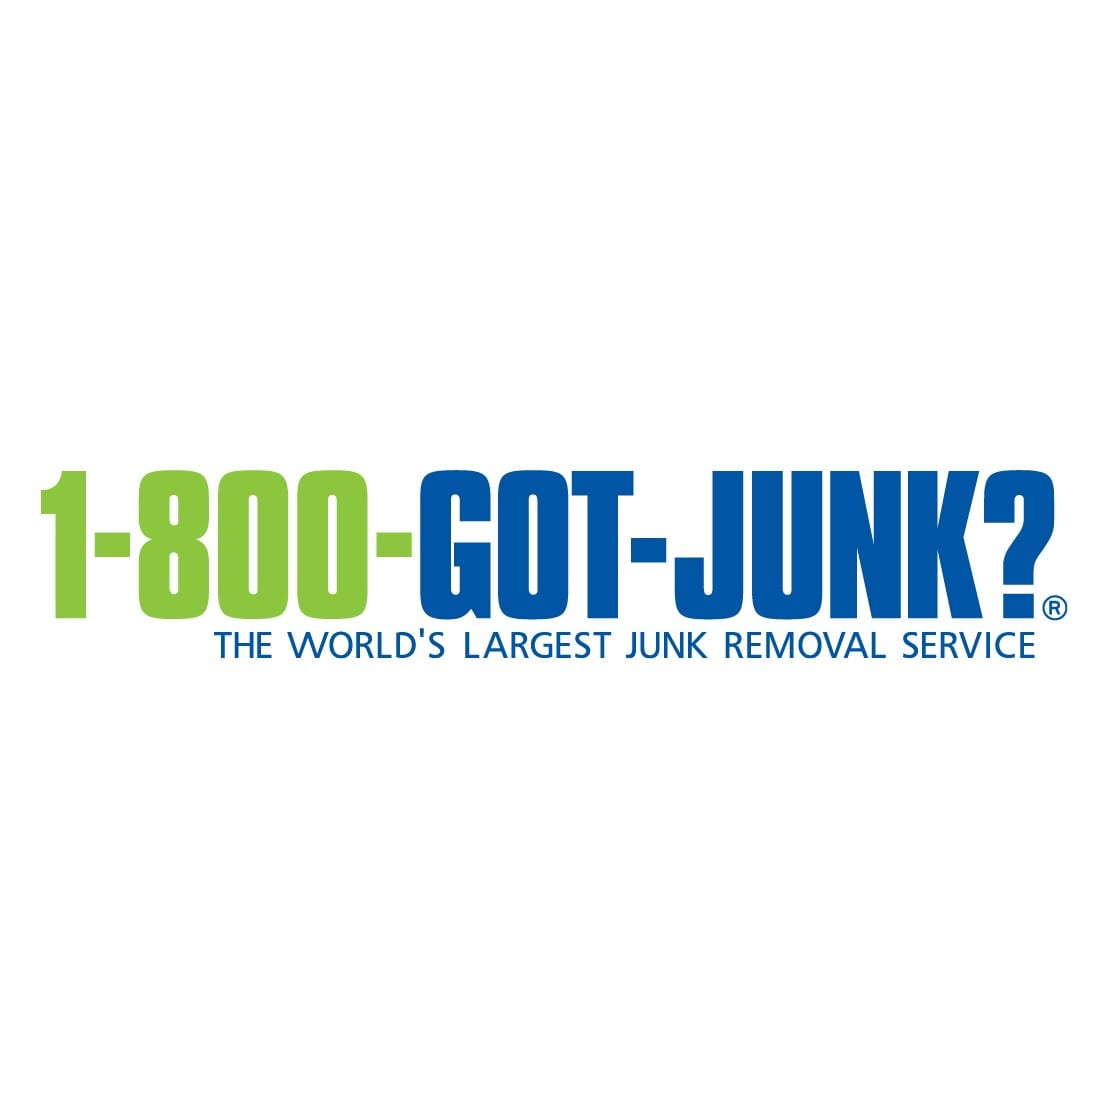 1-800-GOT-JUNK? Save $10 when you book online today!